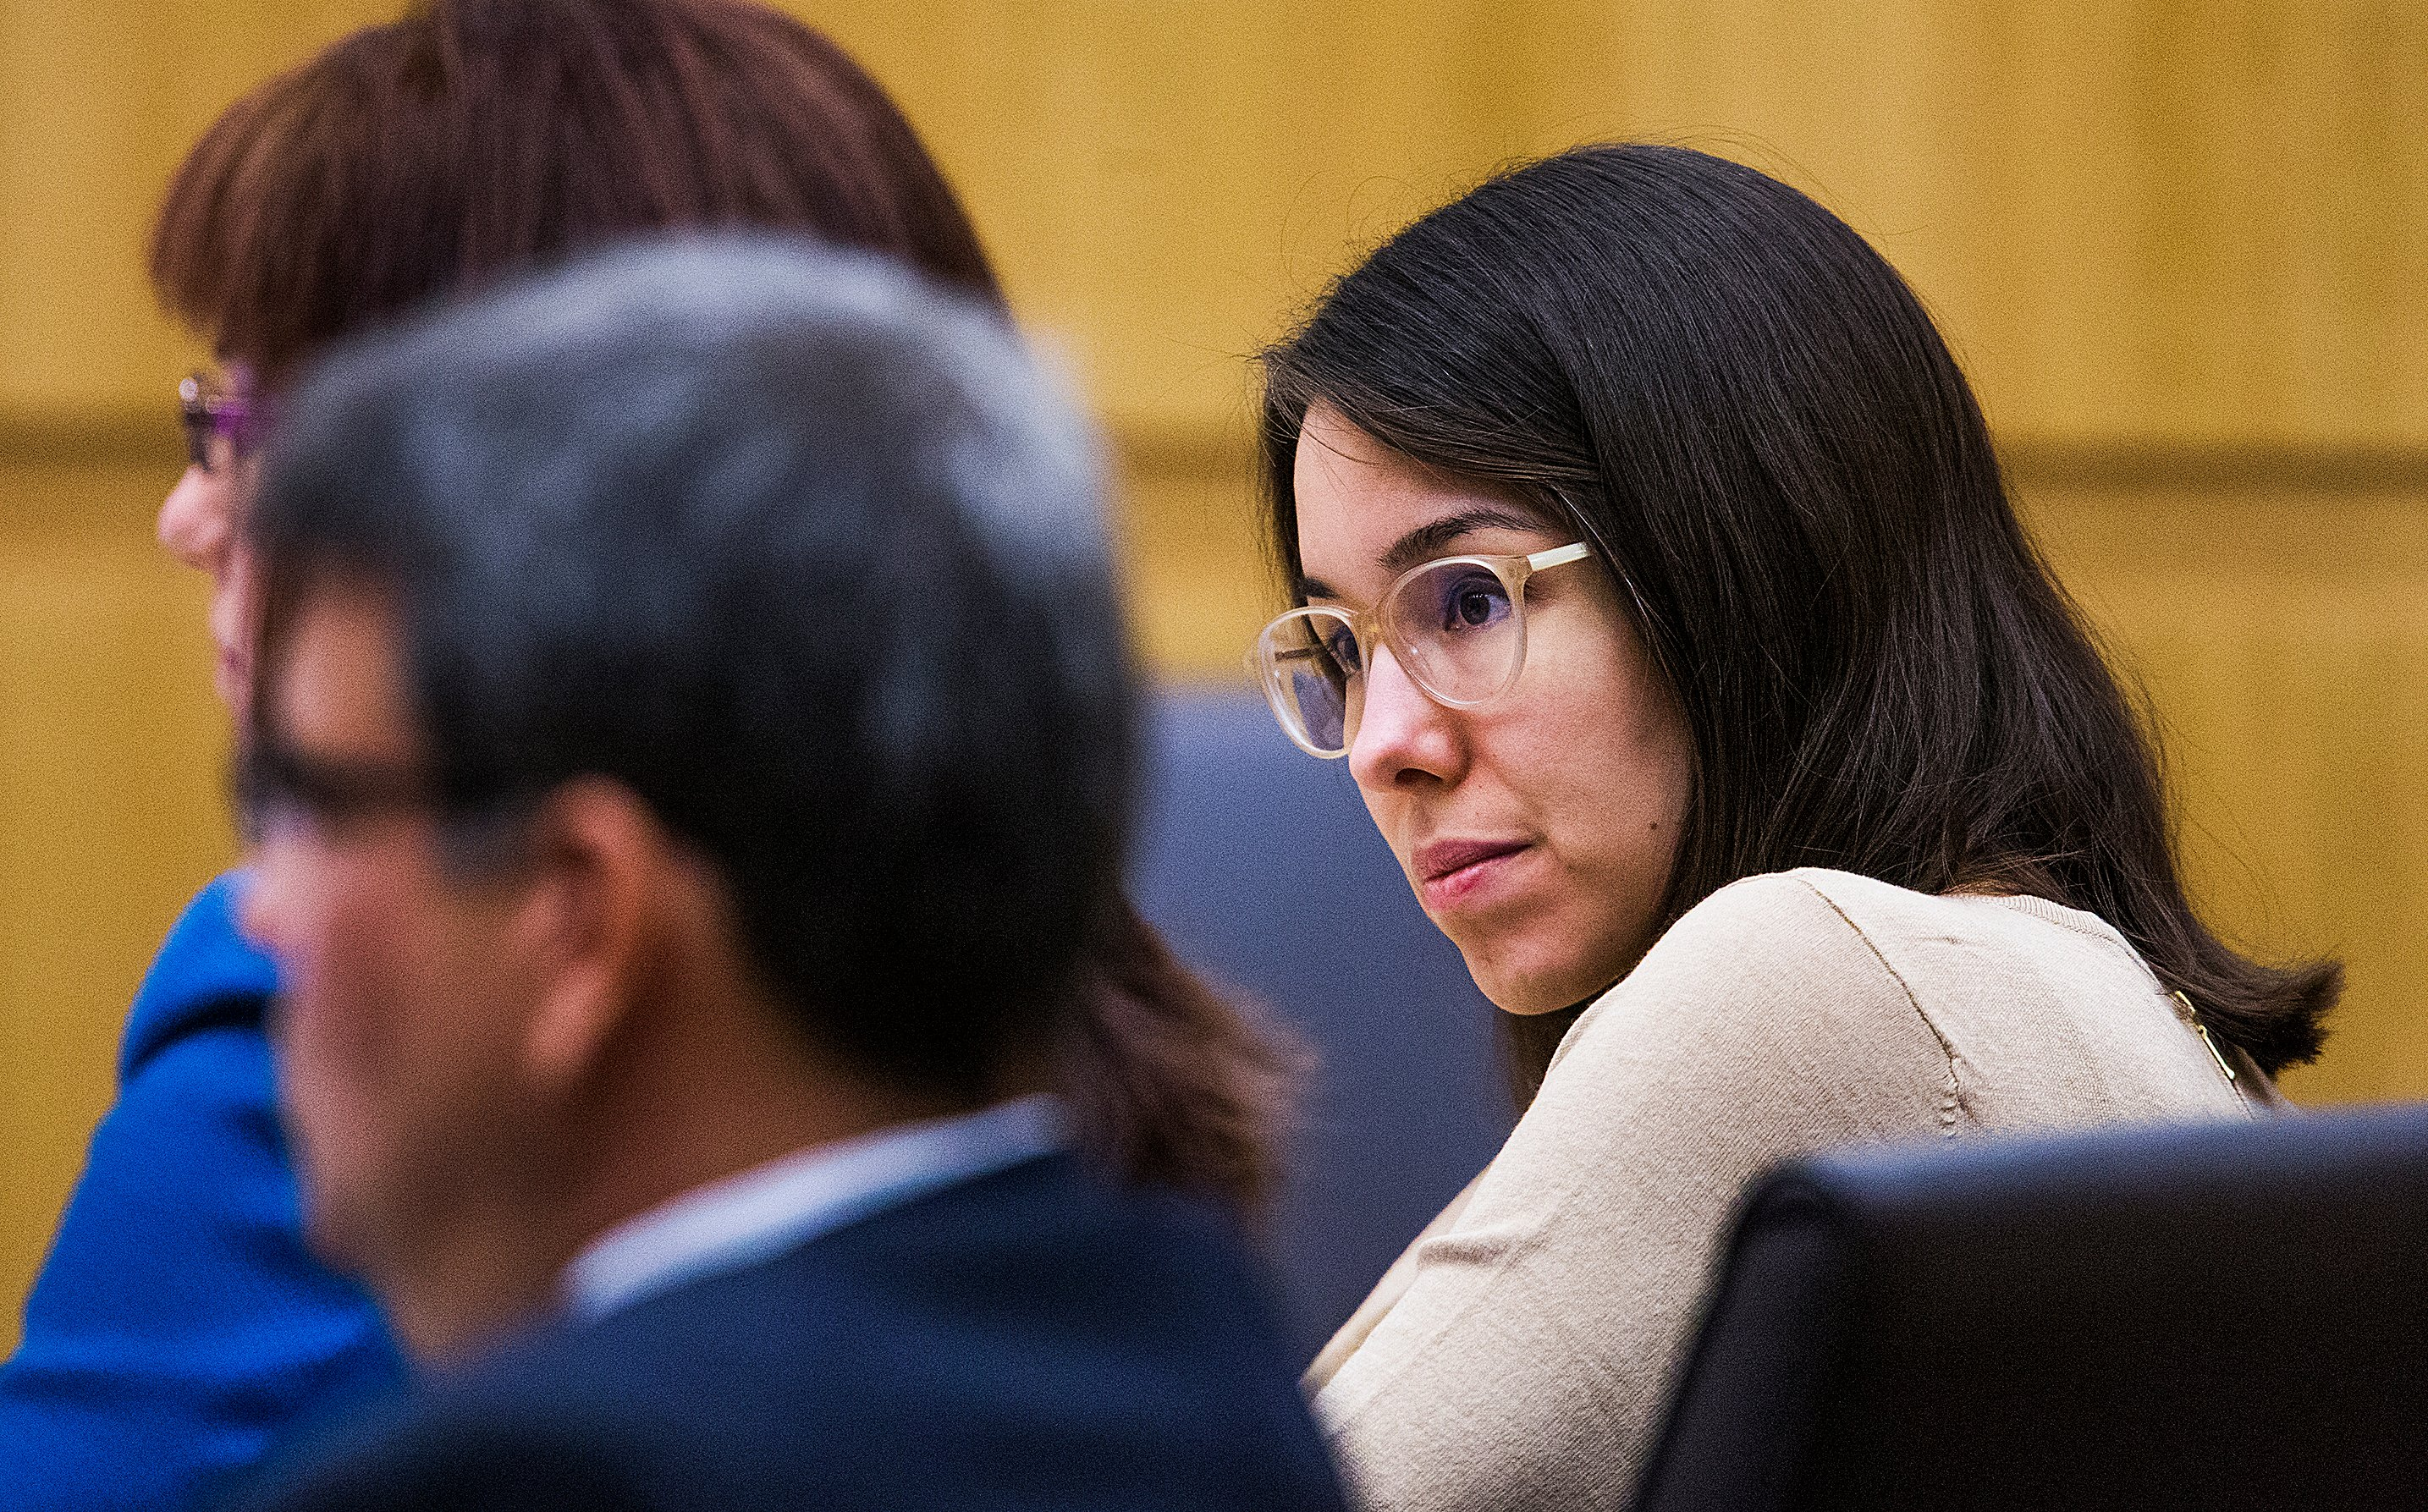 Juan martinez prosecuting attorney biography - Jodi Arias During Opening Arguments Of Her Penalty Phase Retrial On Oct 21 2014